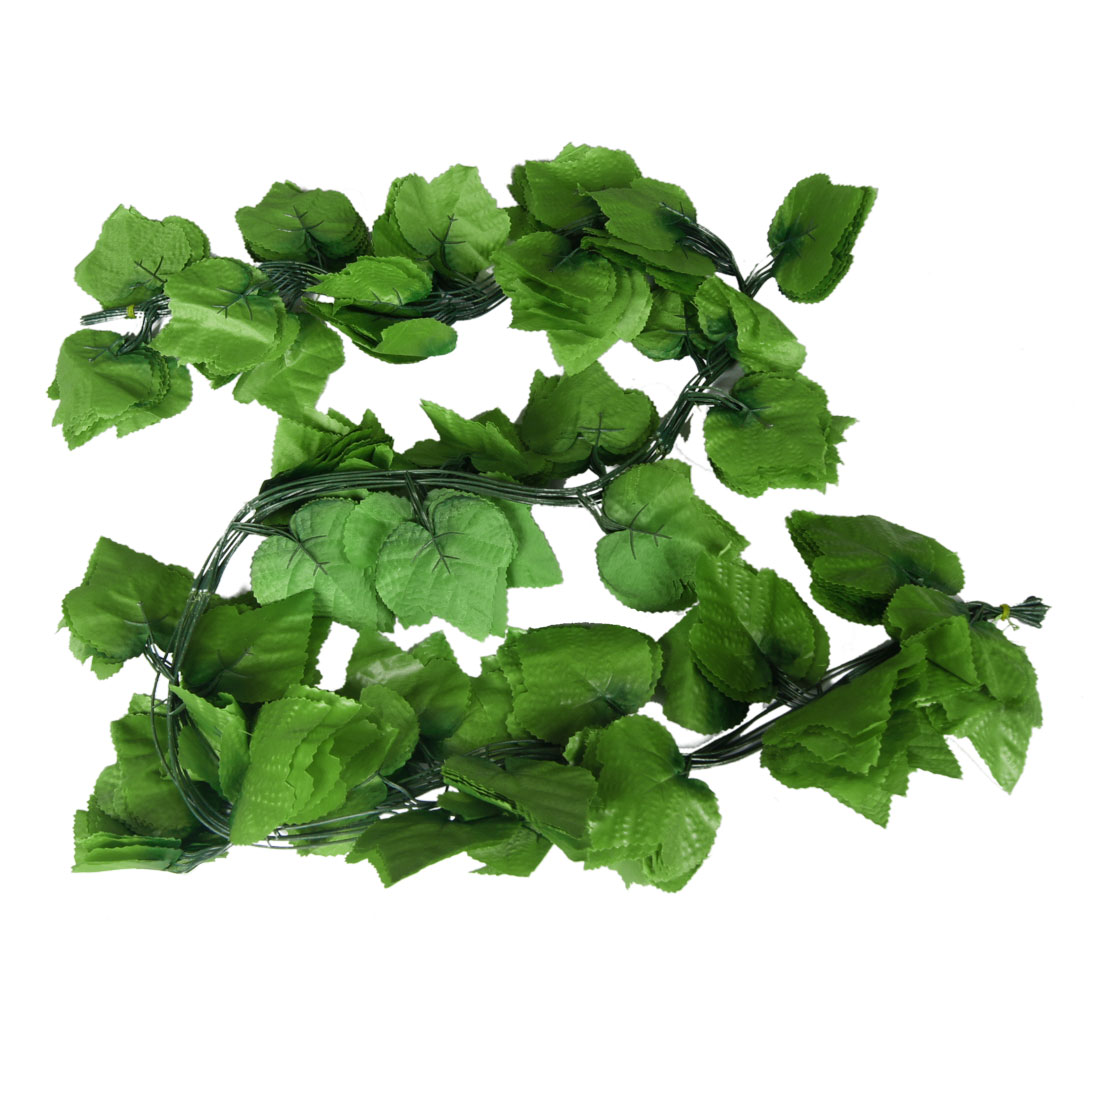 Home Decor Green Artificial Grape Leaves Hanging Vine 5.2Ft 10 Pcs